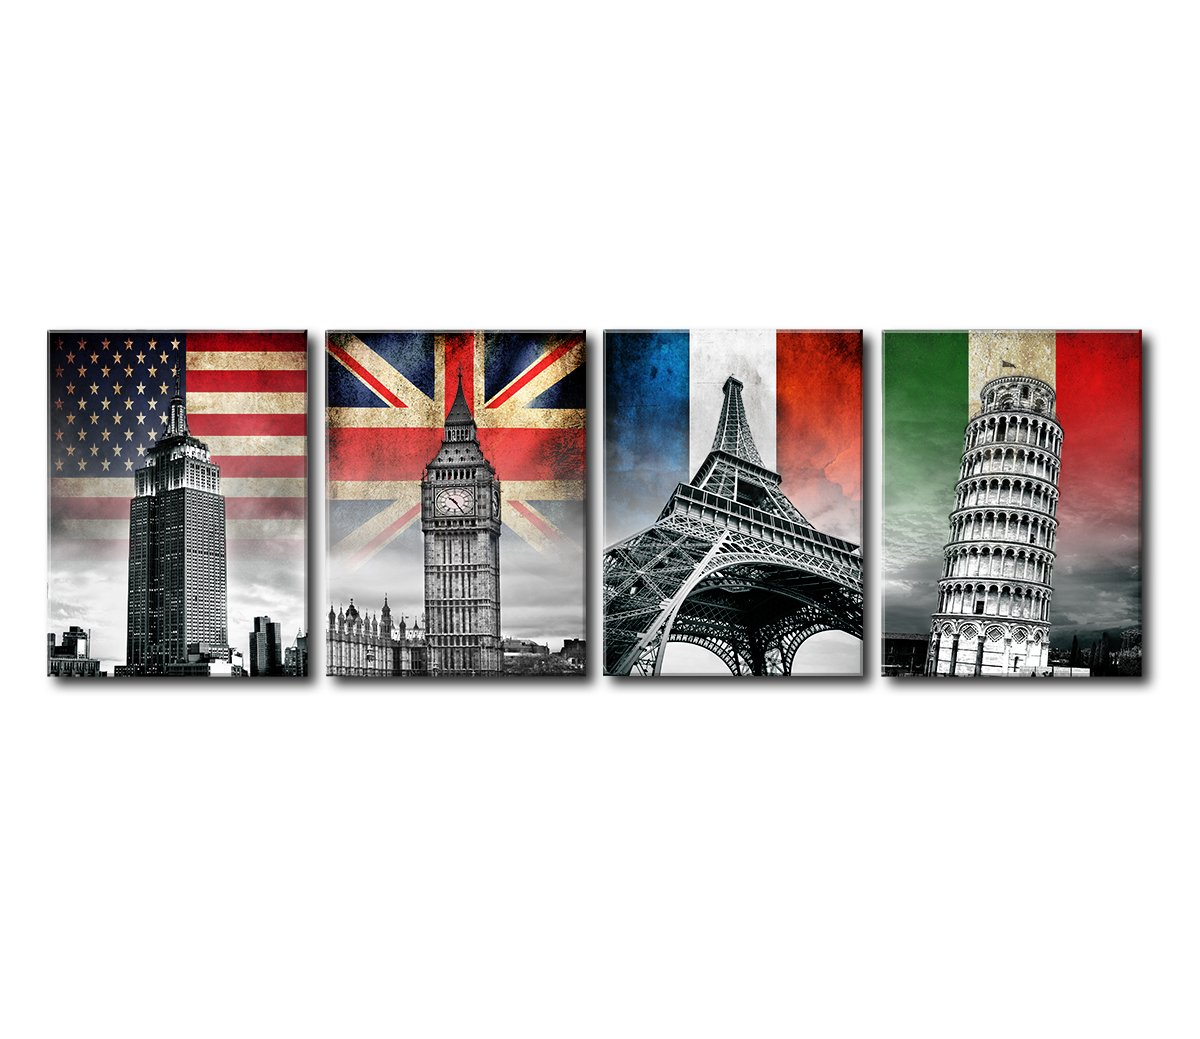 Canvas Prints Wall Art - United States New York Empire State Building, London, England Big Ben, Paris, France Eiffel Tower, Italy Leaning Tower of Pisa - National Flags and Landmarks Travel Home Decor